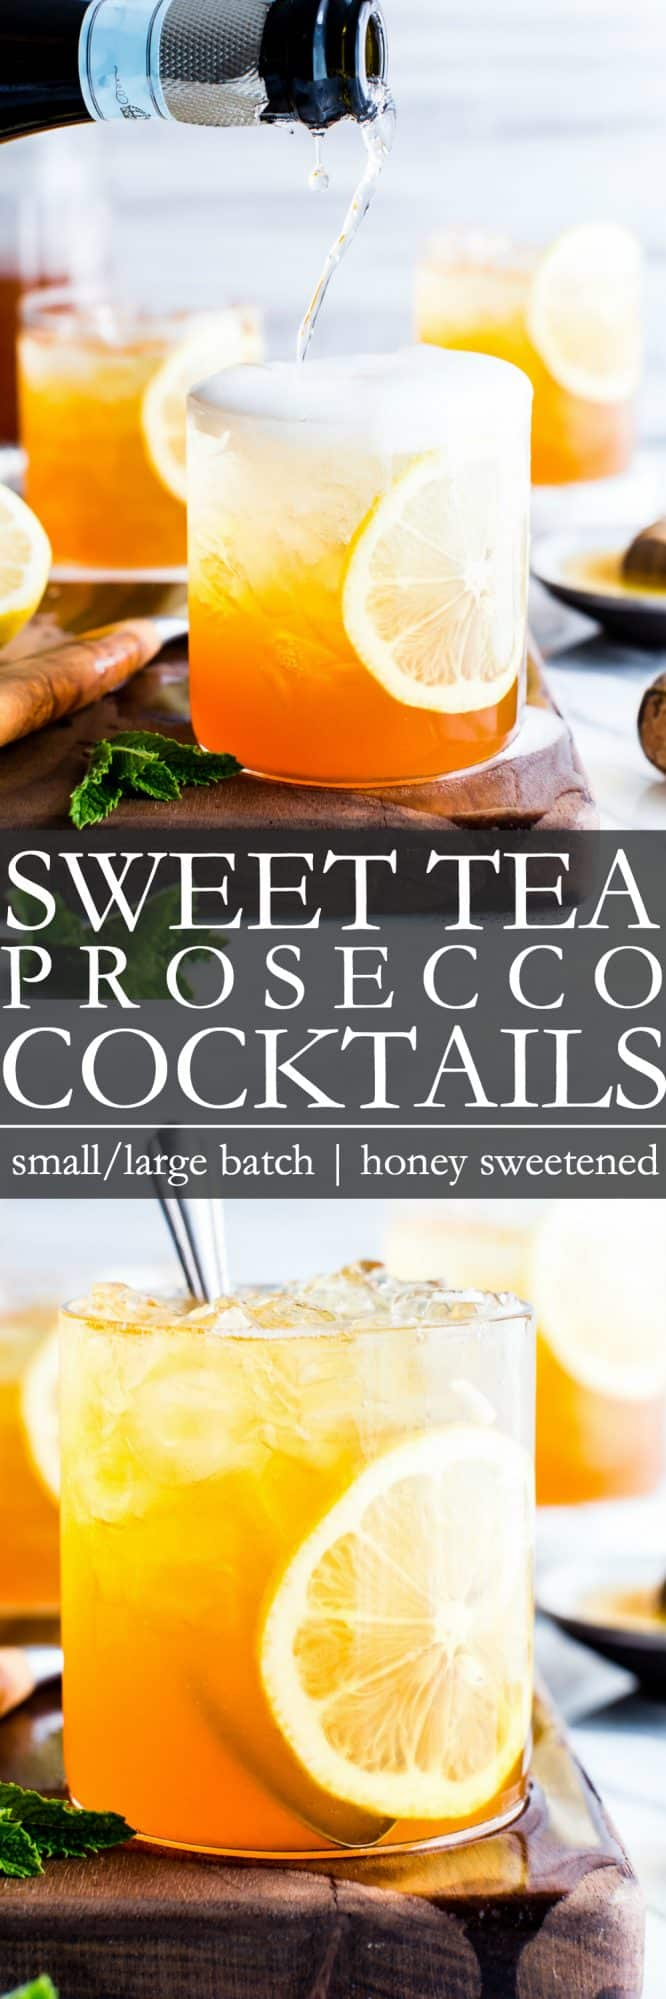 Sweet Tea Prosecco Cocktails Recipe